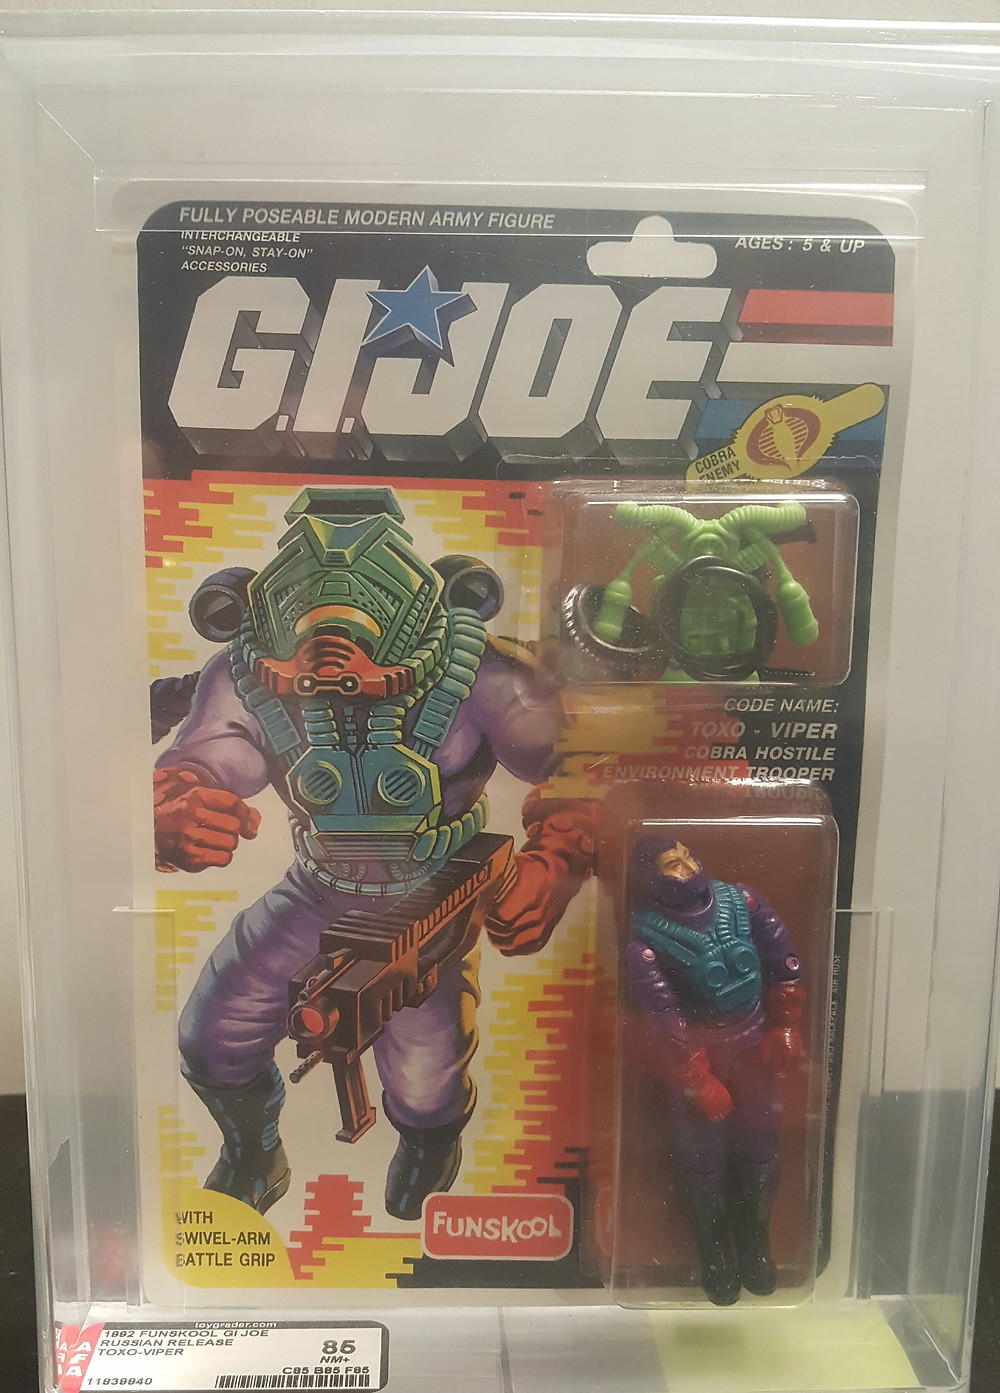 Gi Joes-TMNT-Transformers and more http://www.valleygoto.com